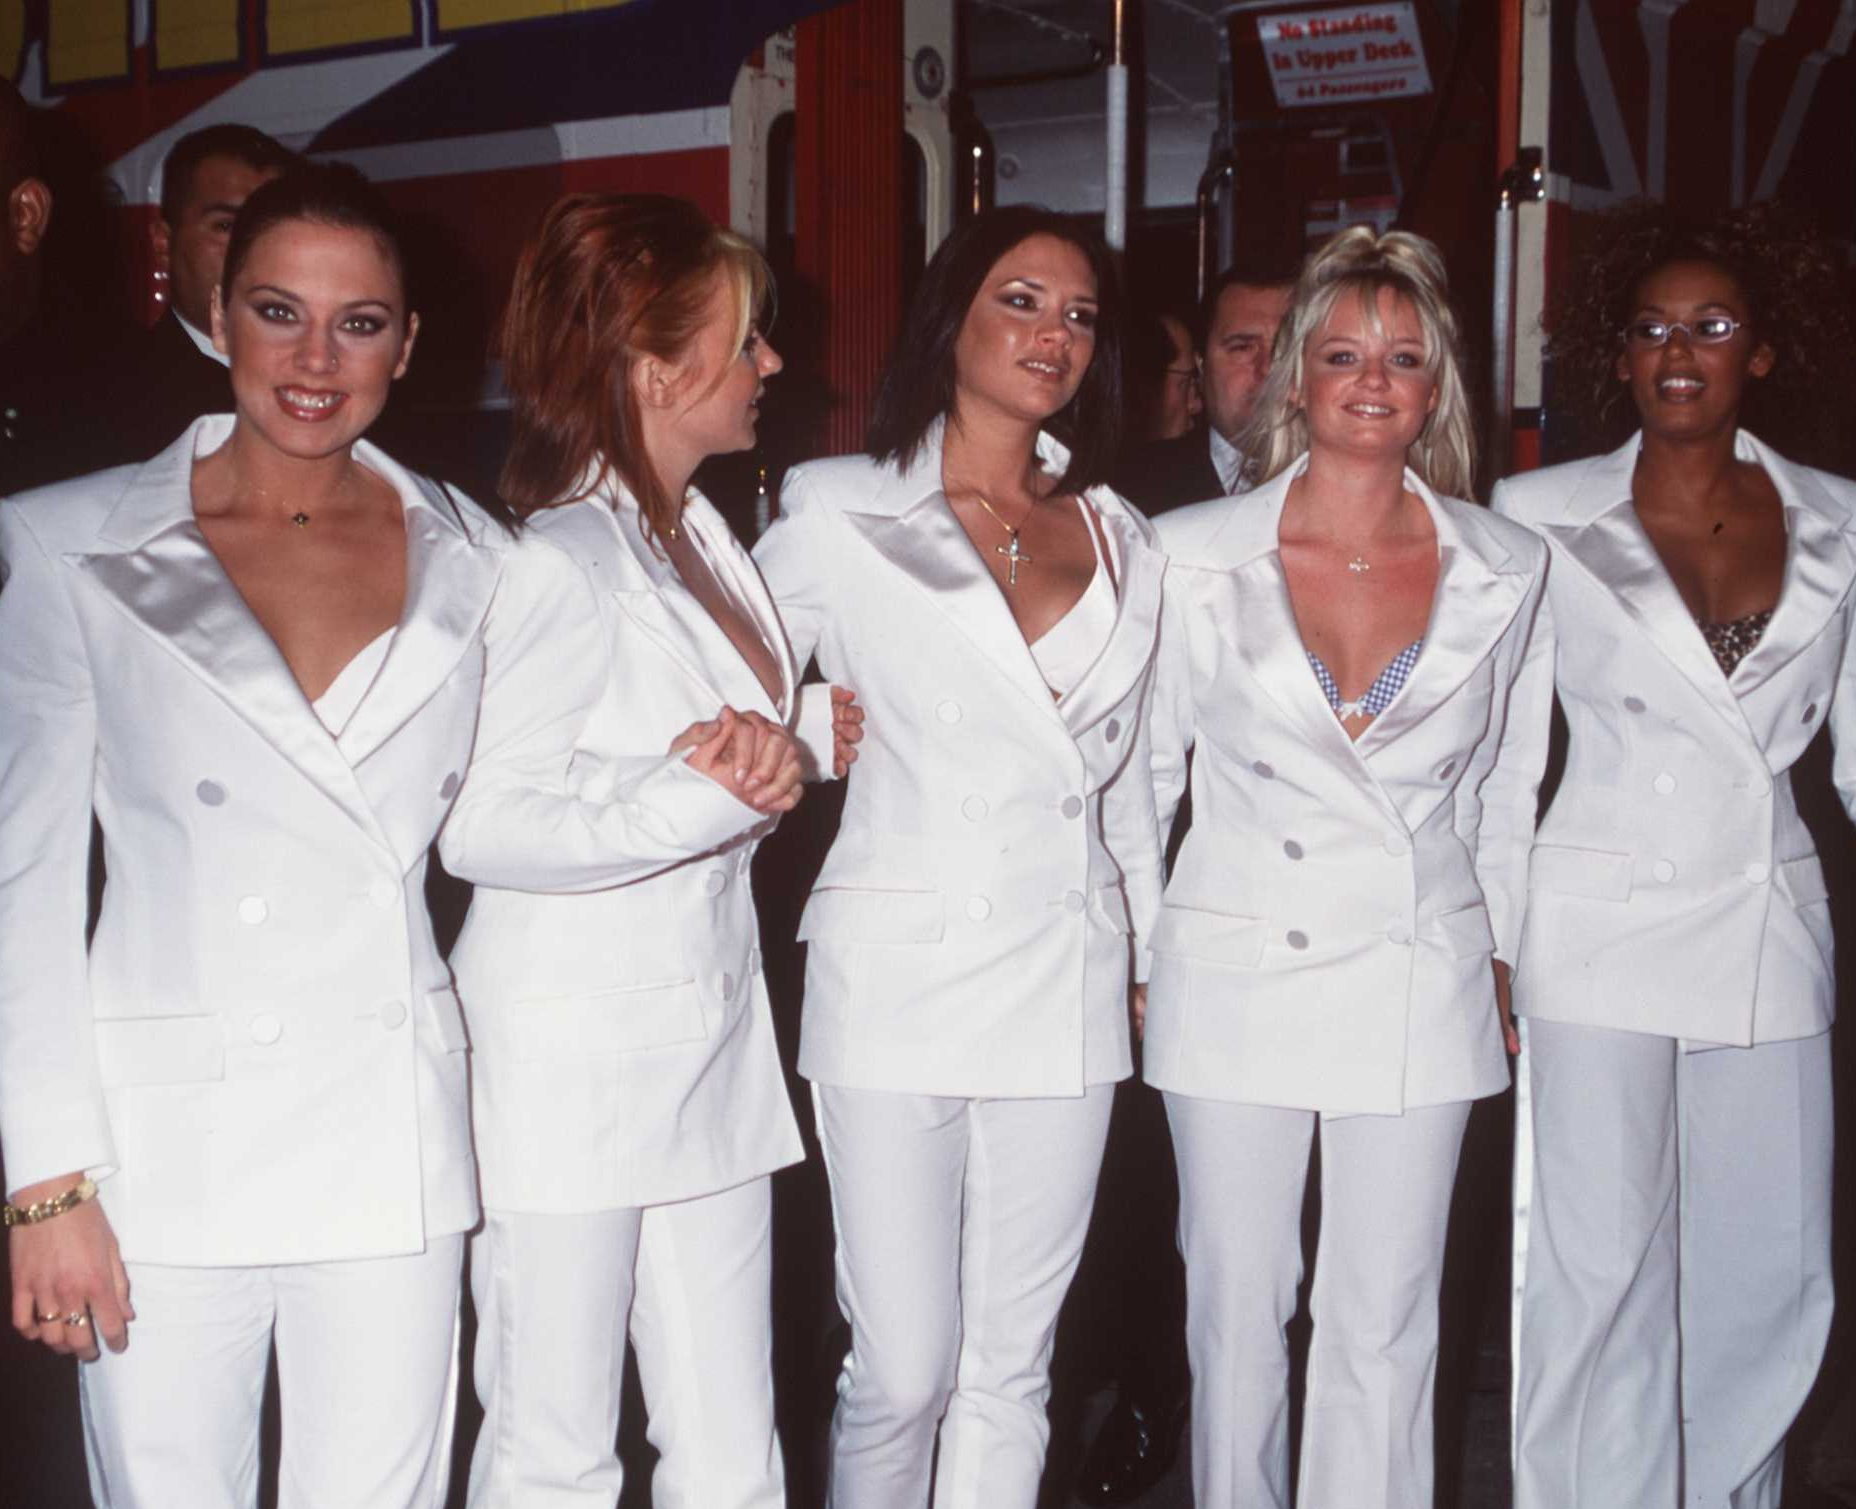 gettyimages 1140939 e1624023932817 Zig-A-Zig-Ah! It's 25 Fascinating Facts About The Spice Girls!